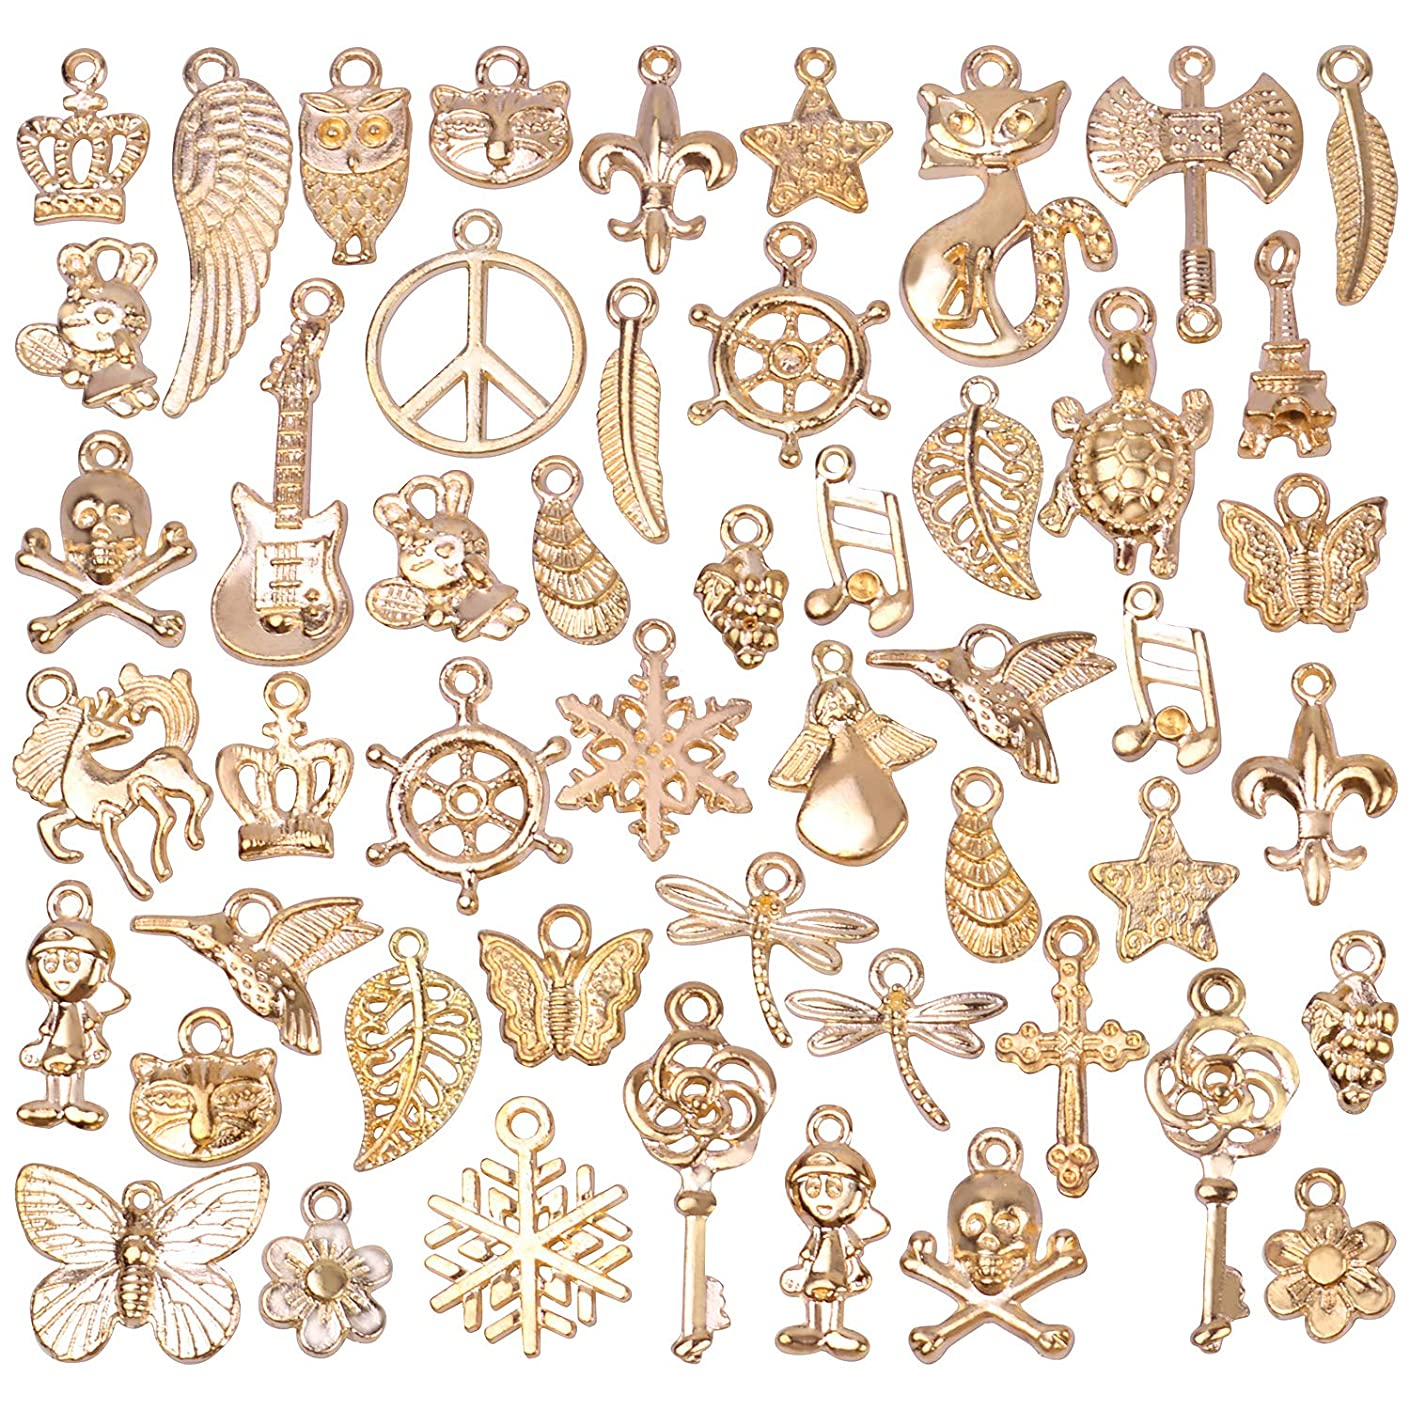 BronaGrand 50 Pieces Mixed Bracelet Charms Antique Necklace Pendants Bulk Pack for Craft and Jewelry Making,Rose Gold